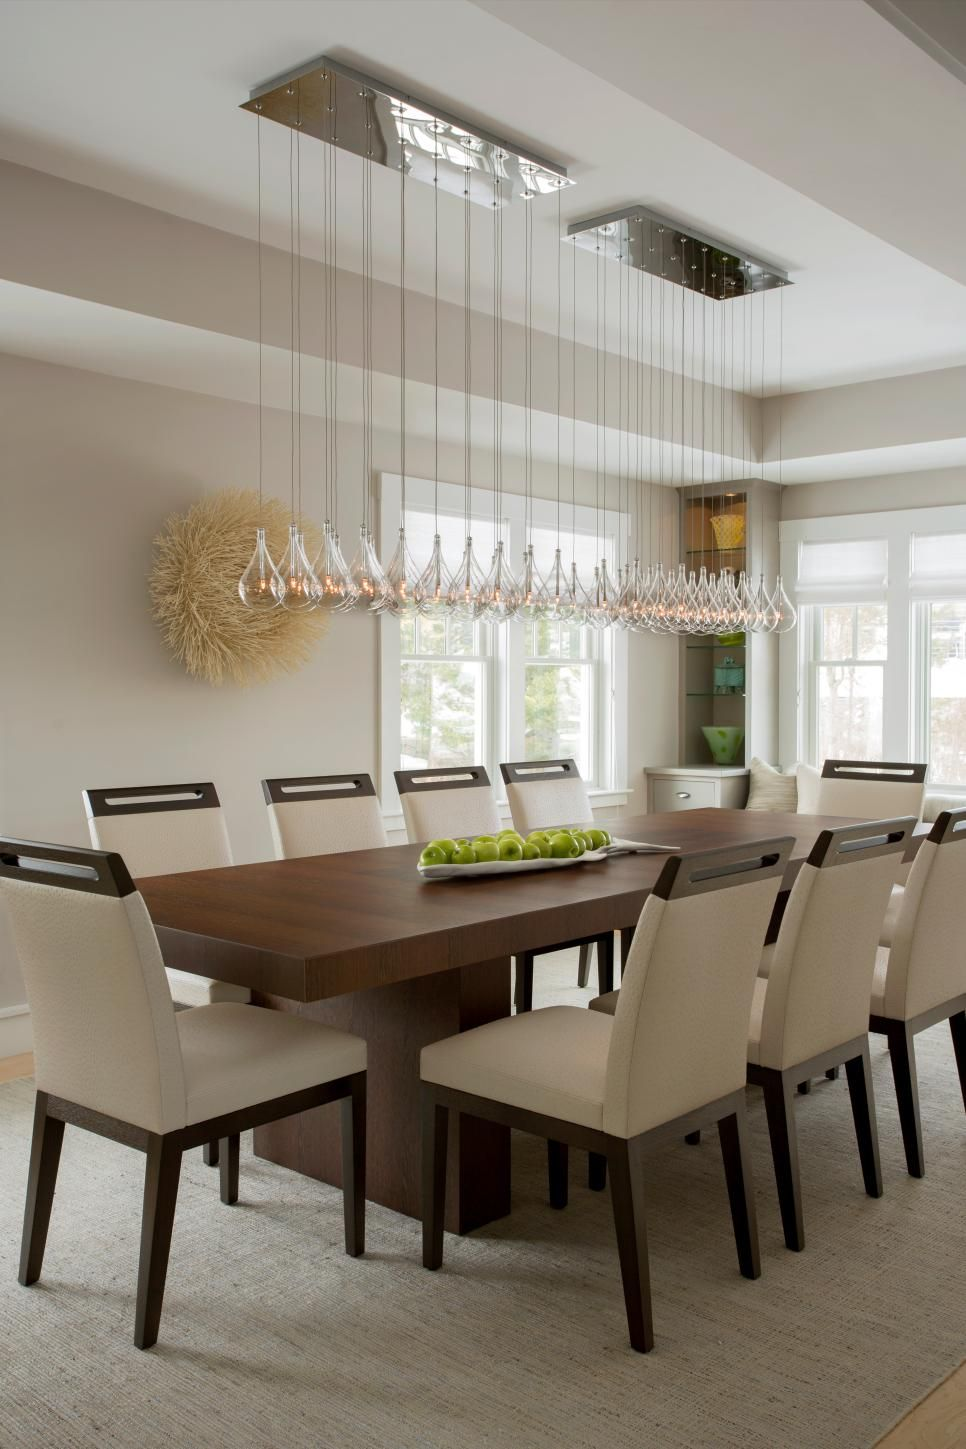 This Modern Dining Room E Features A Long Gl Chandelier Hung Over Warm Wood Table Adding Touch Of Elegance To The Stark